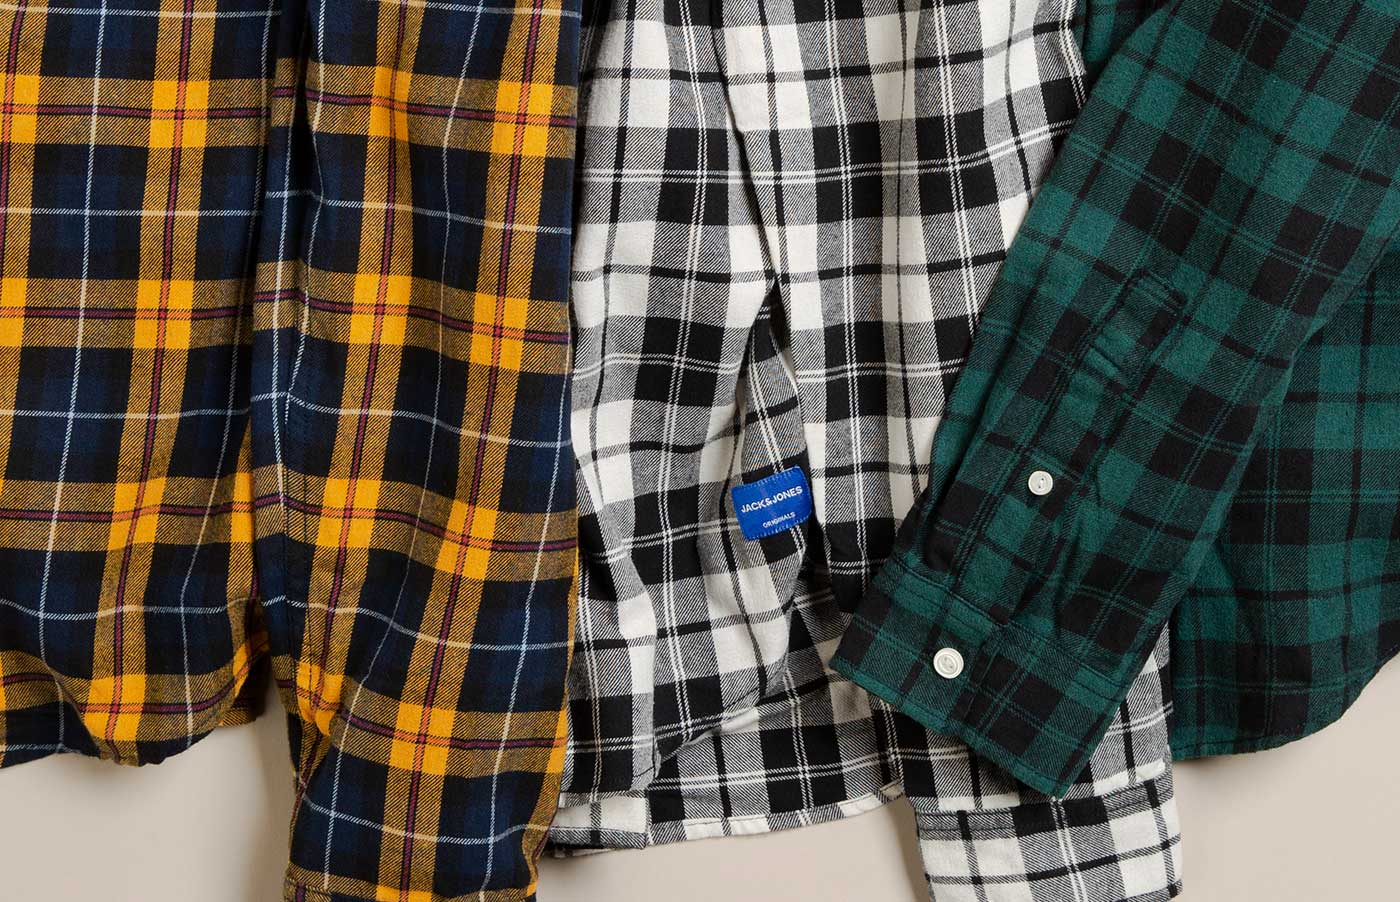 Hooray, it's checked shirt season